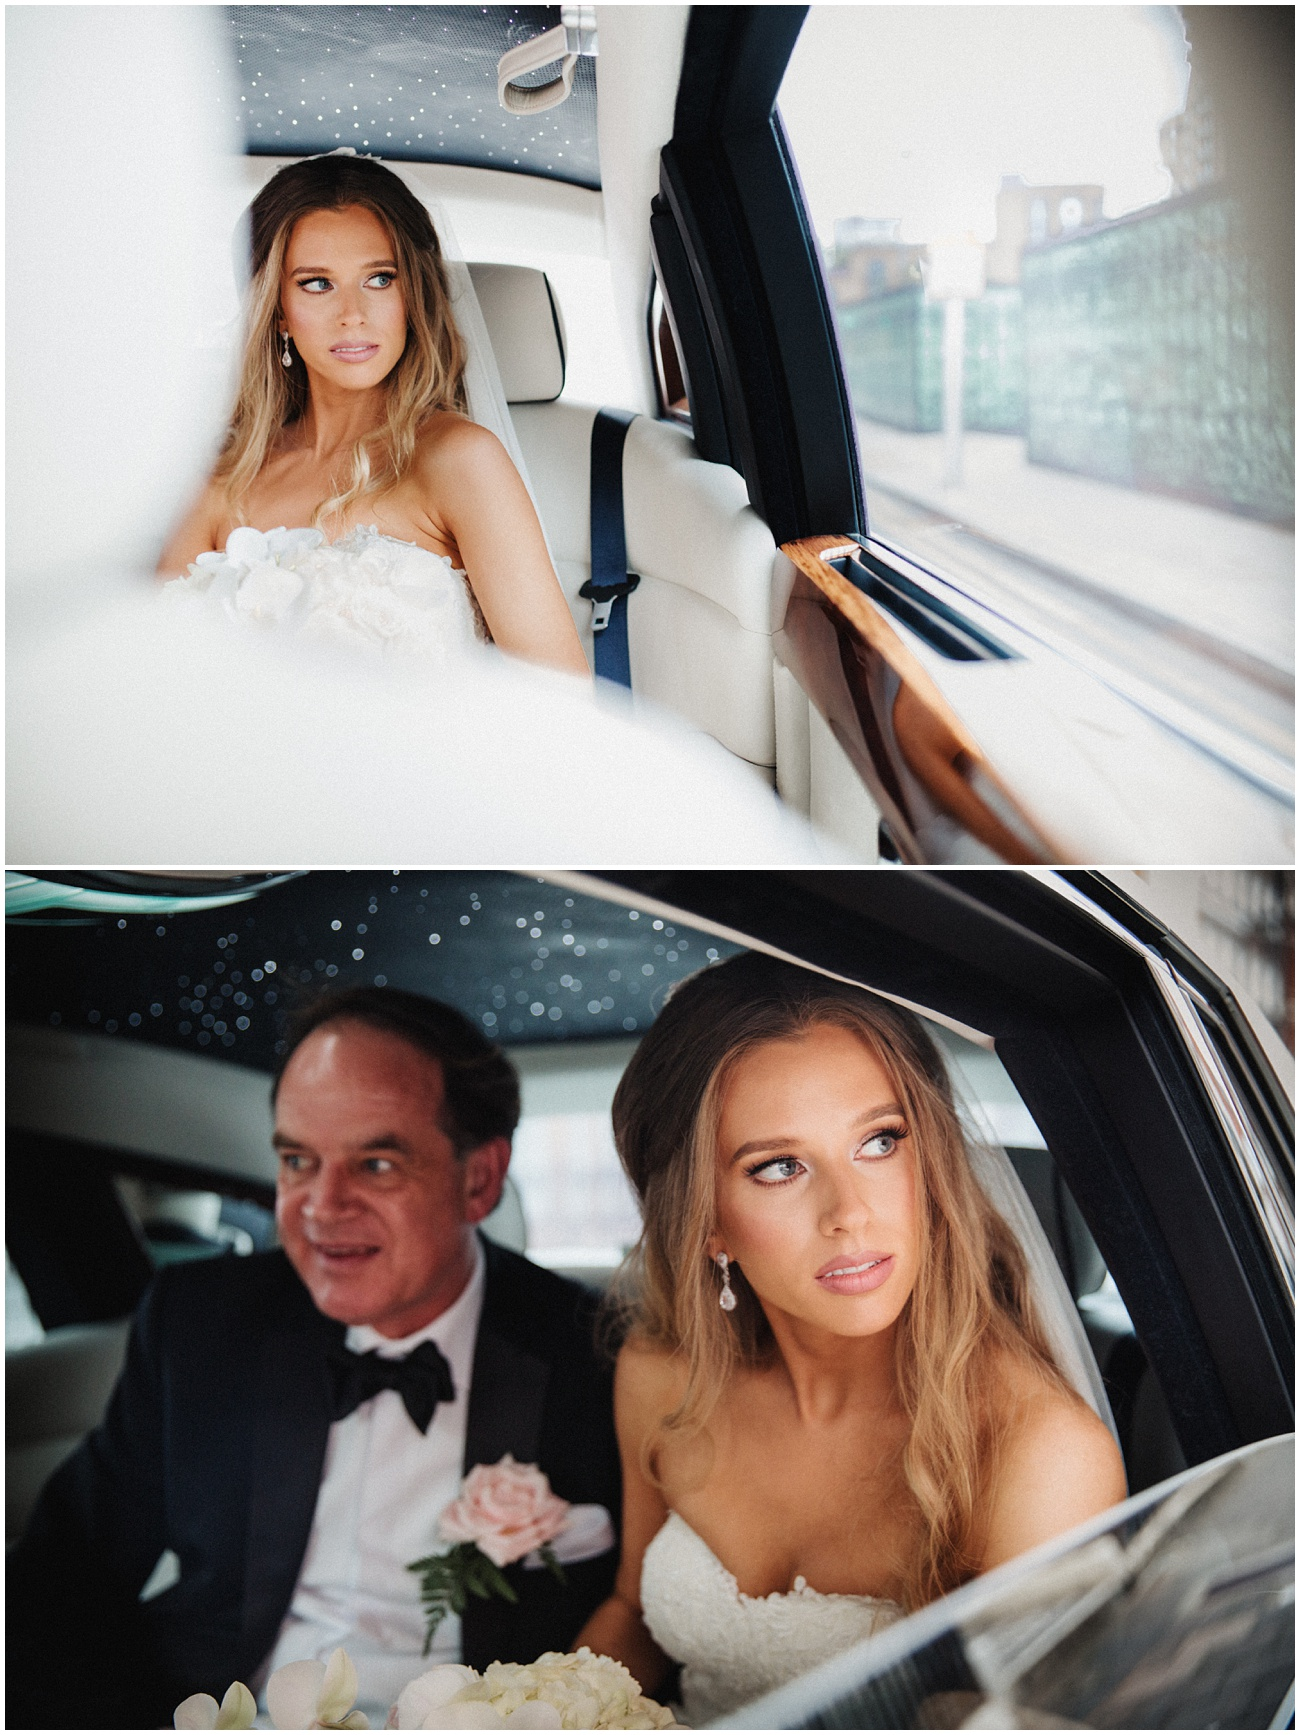 The bride sitting inside her wedding car with her dad looking out of the window